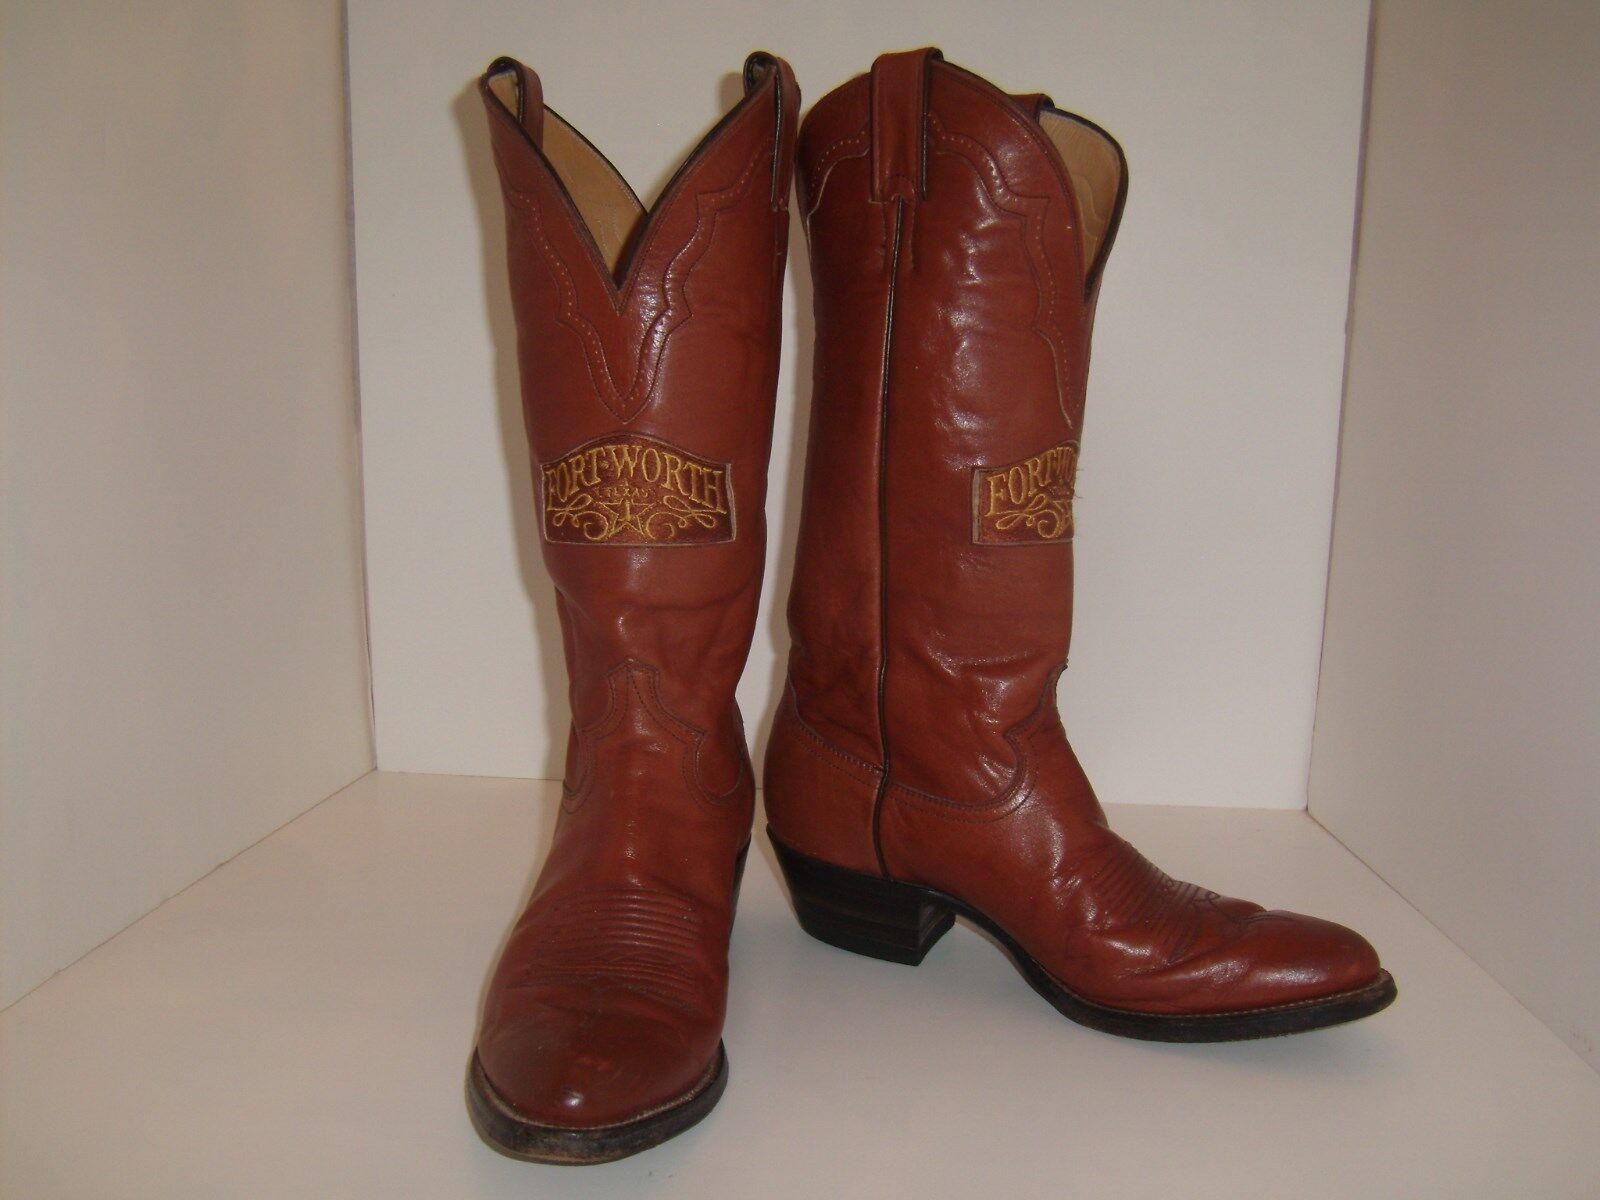 Vintage Justin SieS Cowboy Stiefel Commemorative Fort Worth Patches Größe 8 D